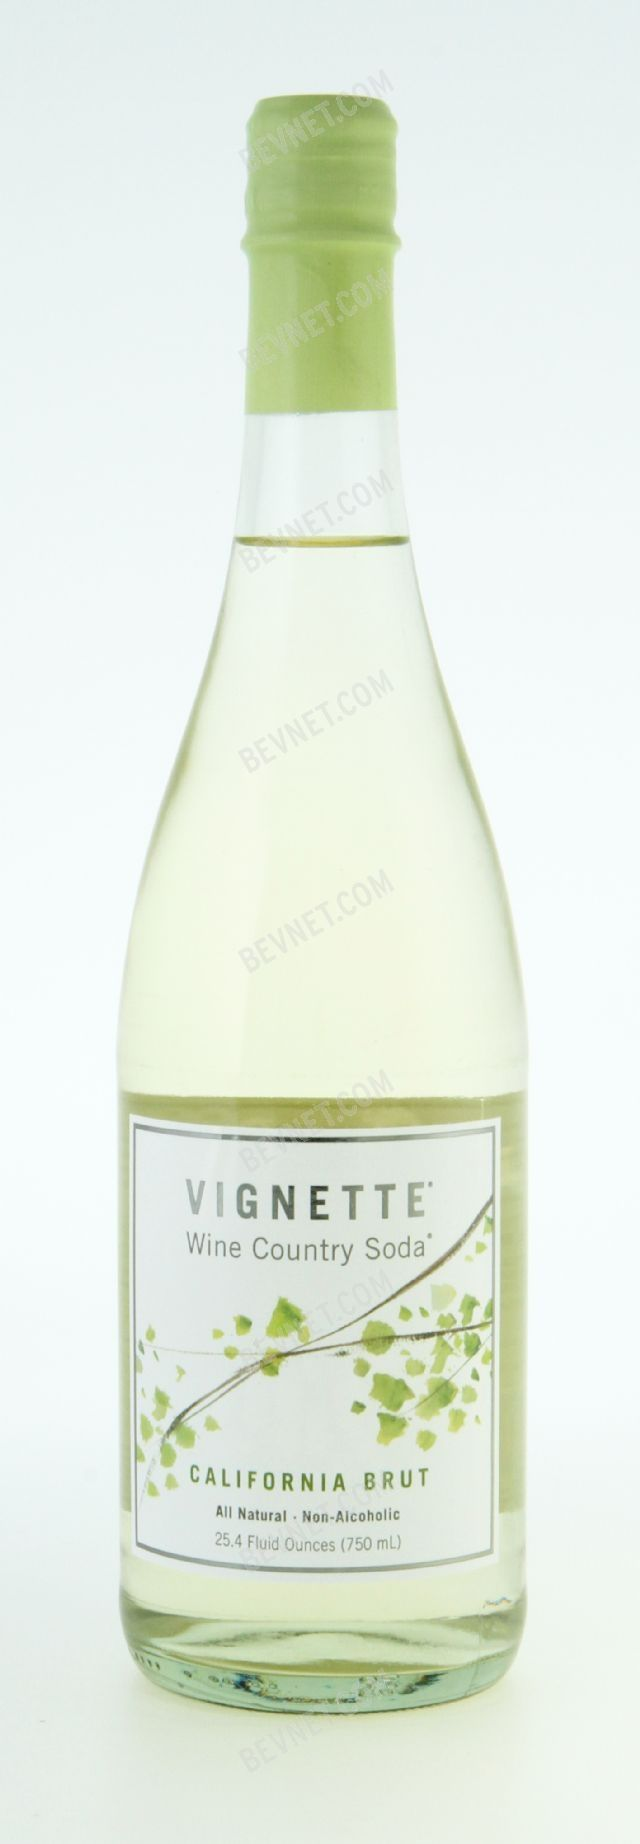 Vignette Wine Country Soda: